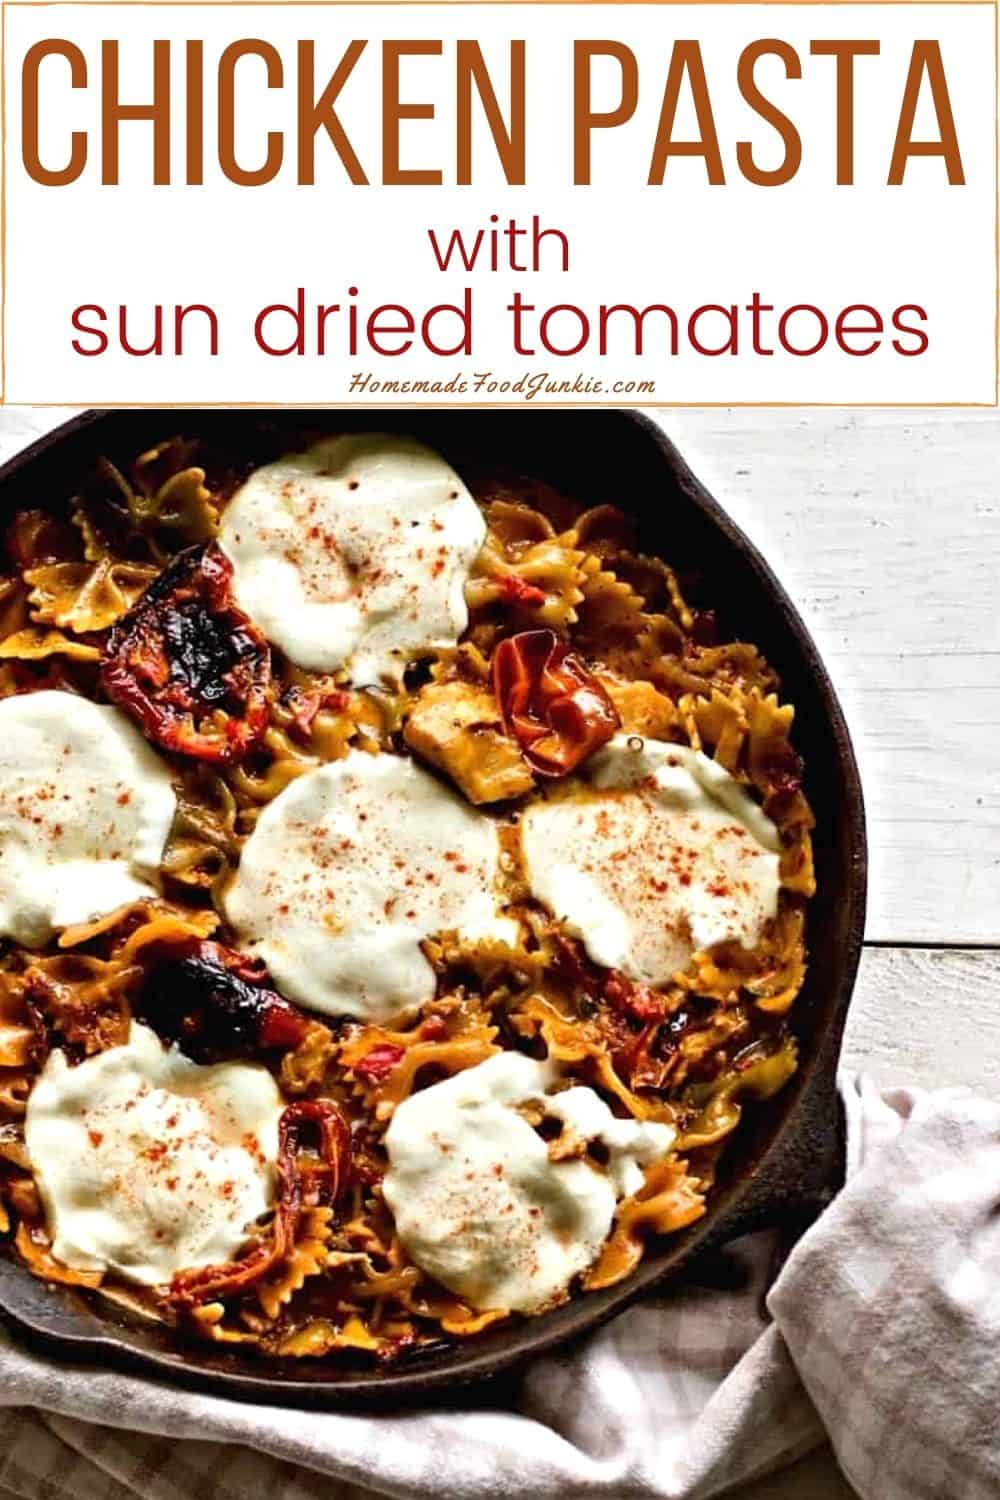 Chicken pasta with sun dried tomatoes-pin image